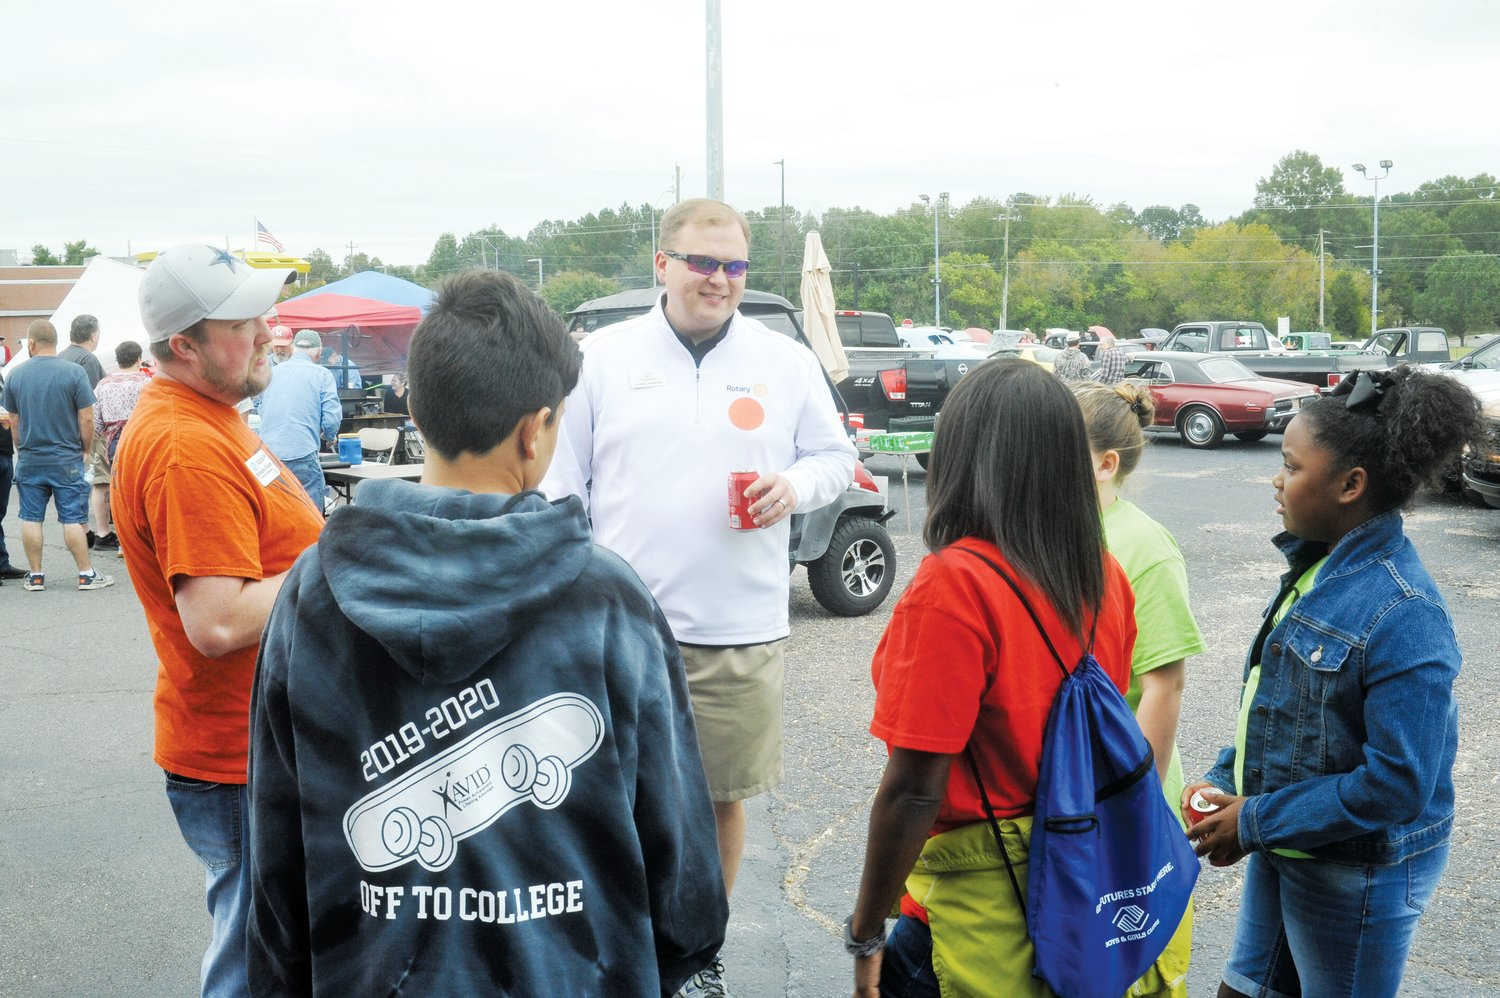 Brandon Kivett and Daniel Simmons, with Boys and Girls Club, chat with some of the local children who will benefit from the funds raised at Saturday's Chatham Chili Challenge. Traci Newby, (not pictured) the education room program leader, said it is one of the biggest fund raising events of the year, with all proceeds going to the club.